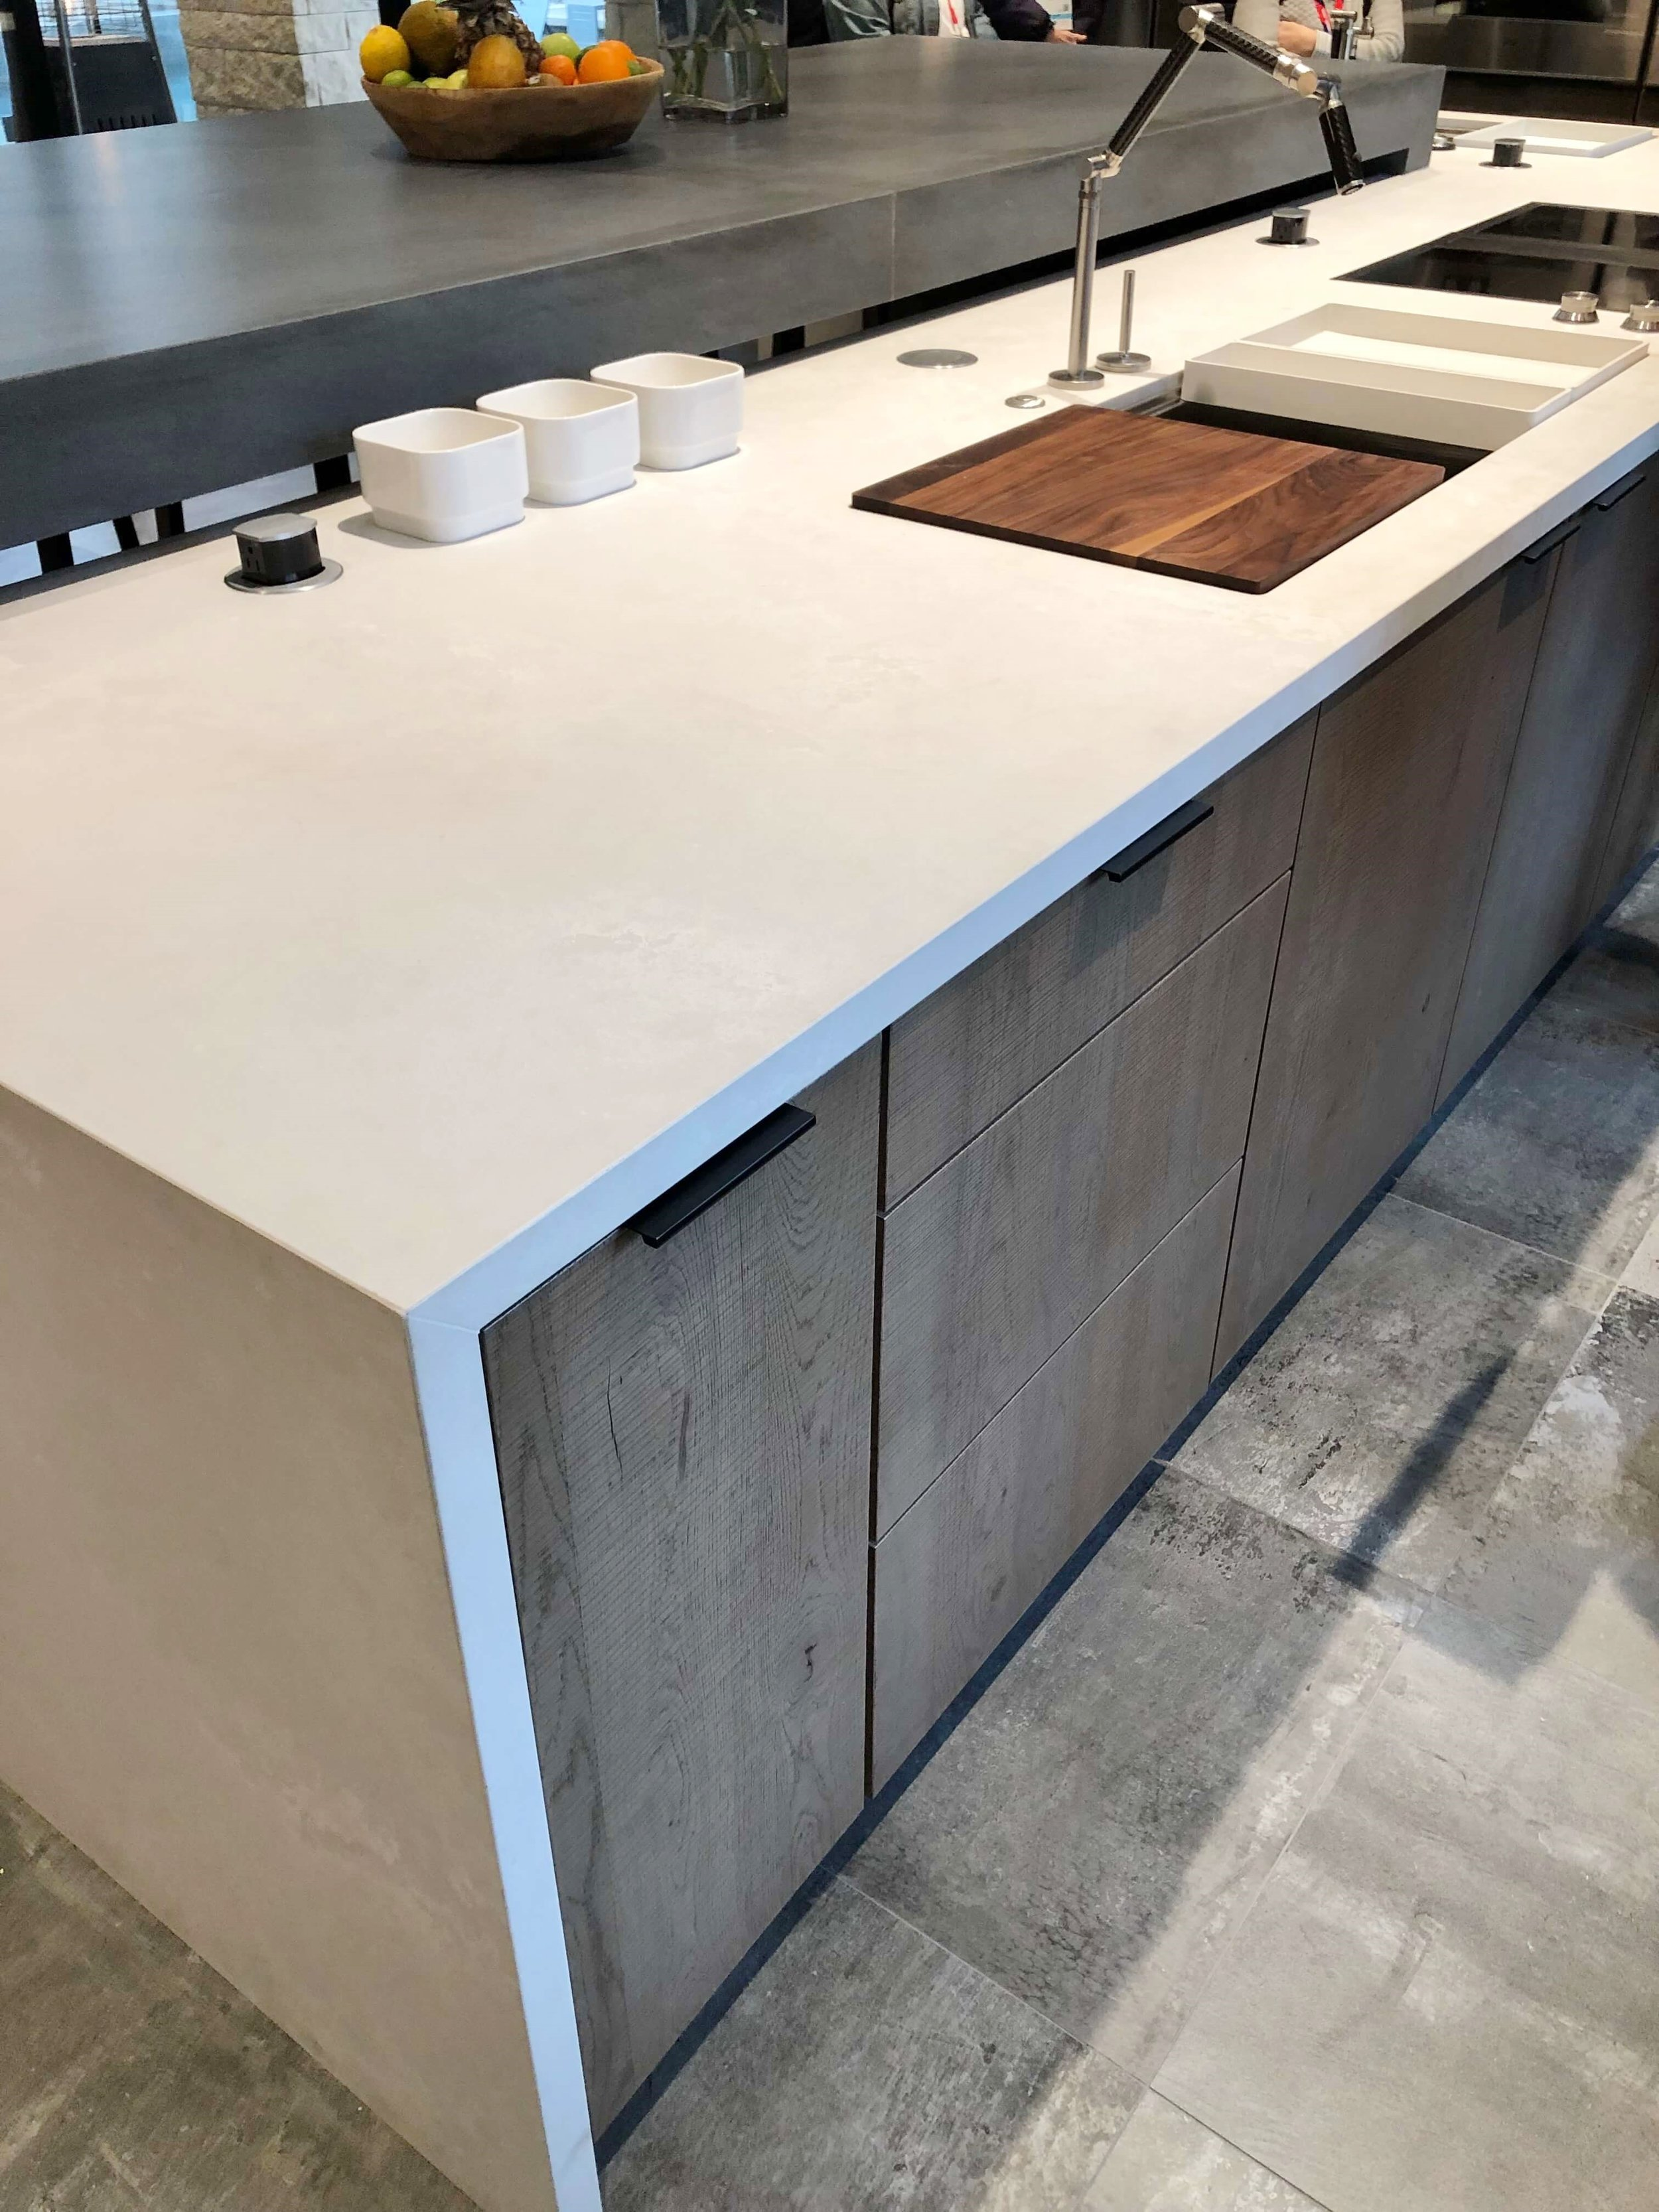 The waterfall edge kitchen island had flat front rustic wood paneled cabinetry below. Pop up outlets are located for convenience in the island. The New American Remodel 2019 #hometour #kitchenisland #kitchen #contemporaryhome